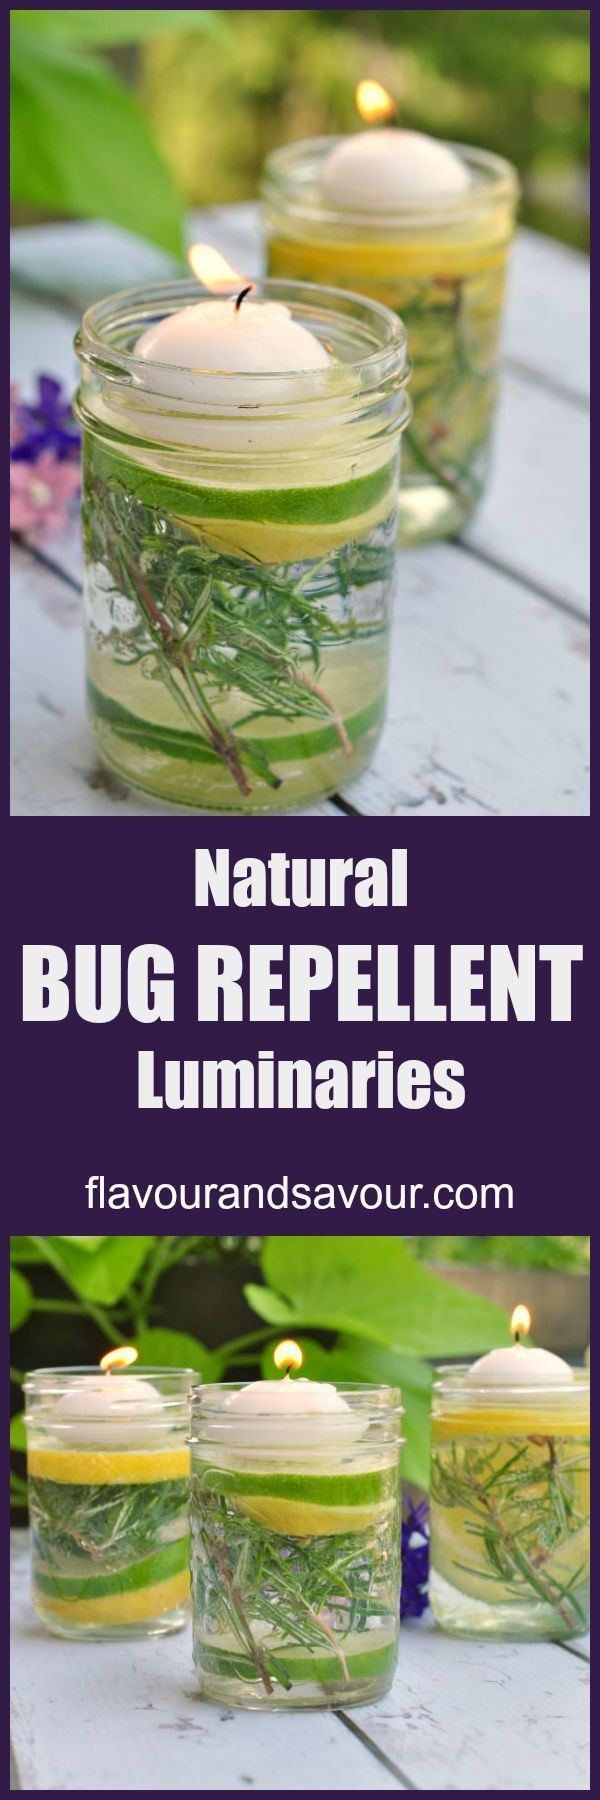 Natural Bug Repellent Luminaries